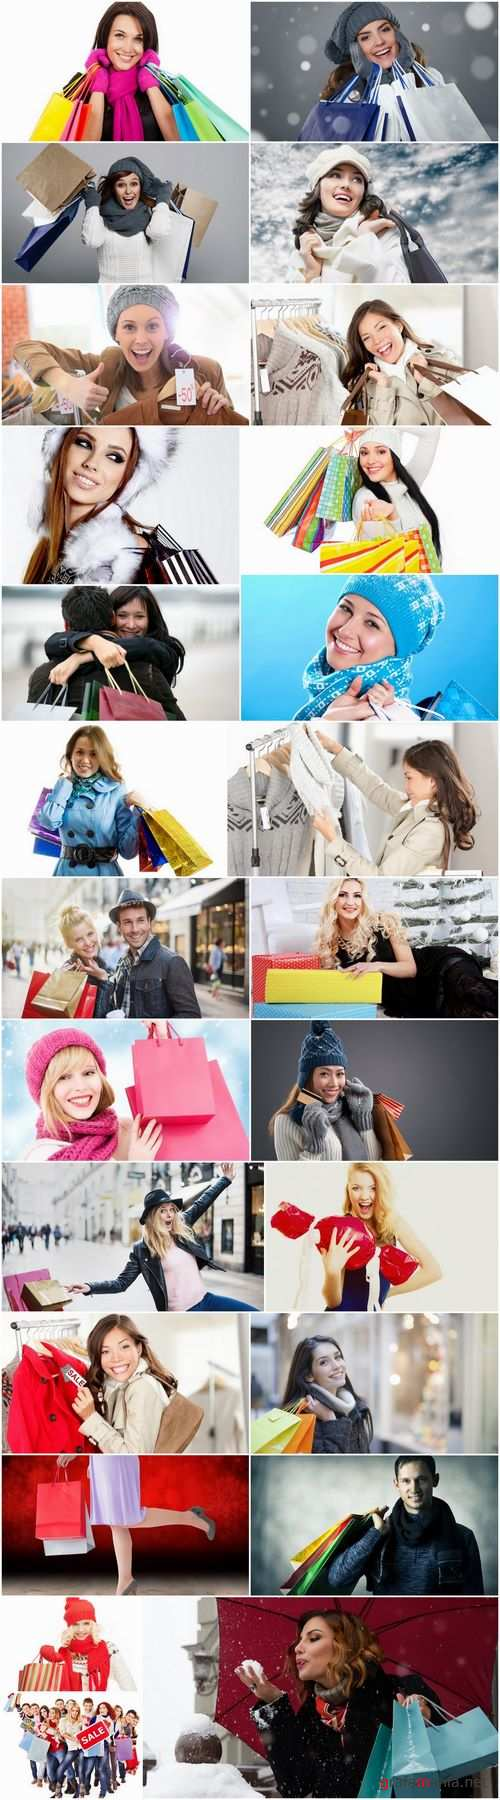 Beautiful girls with shopping bags 25 HQ Jpeg